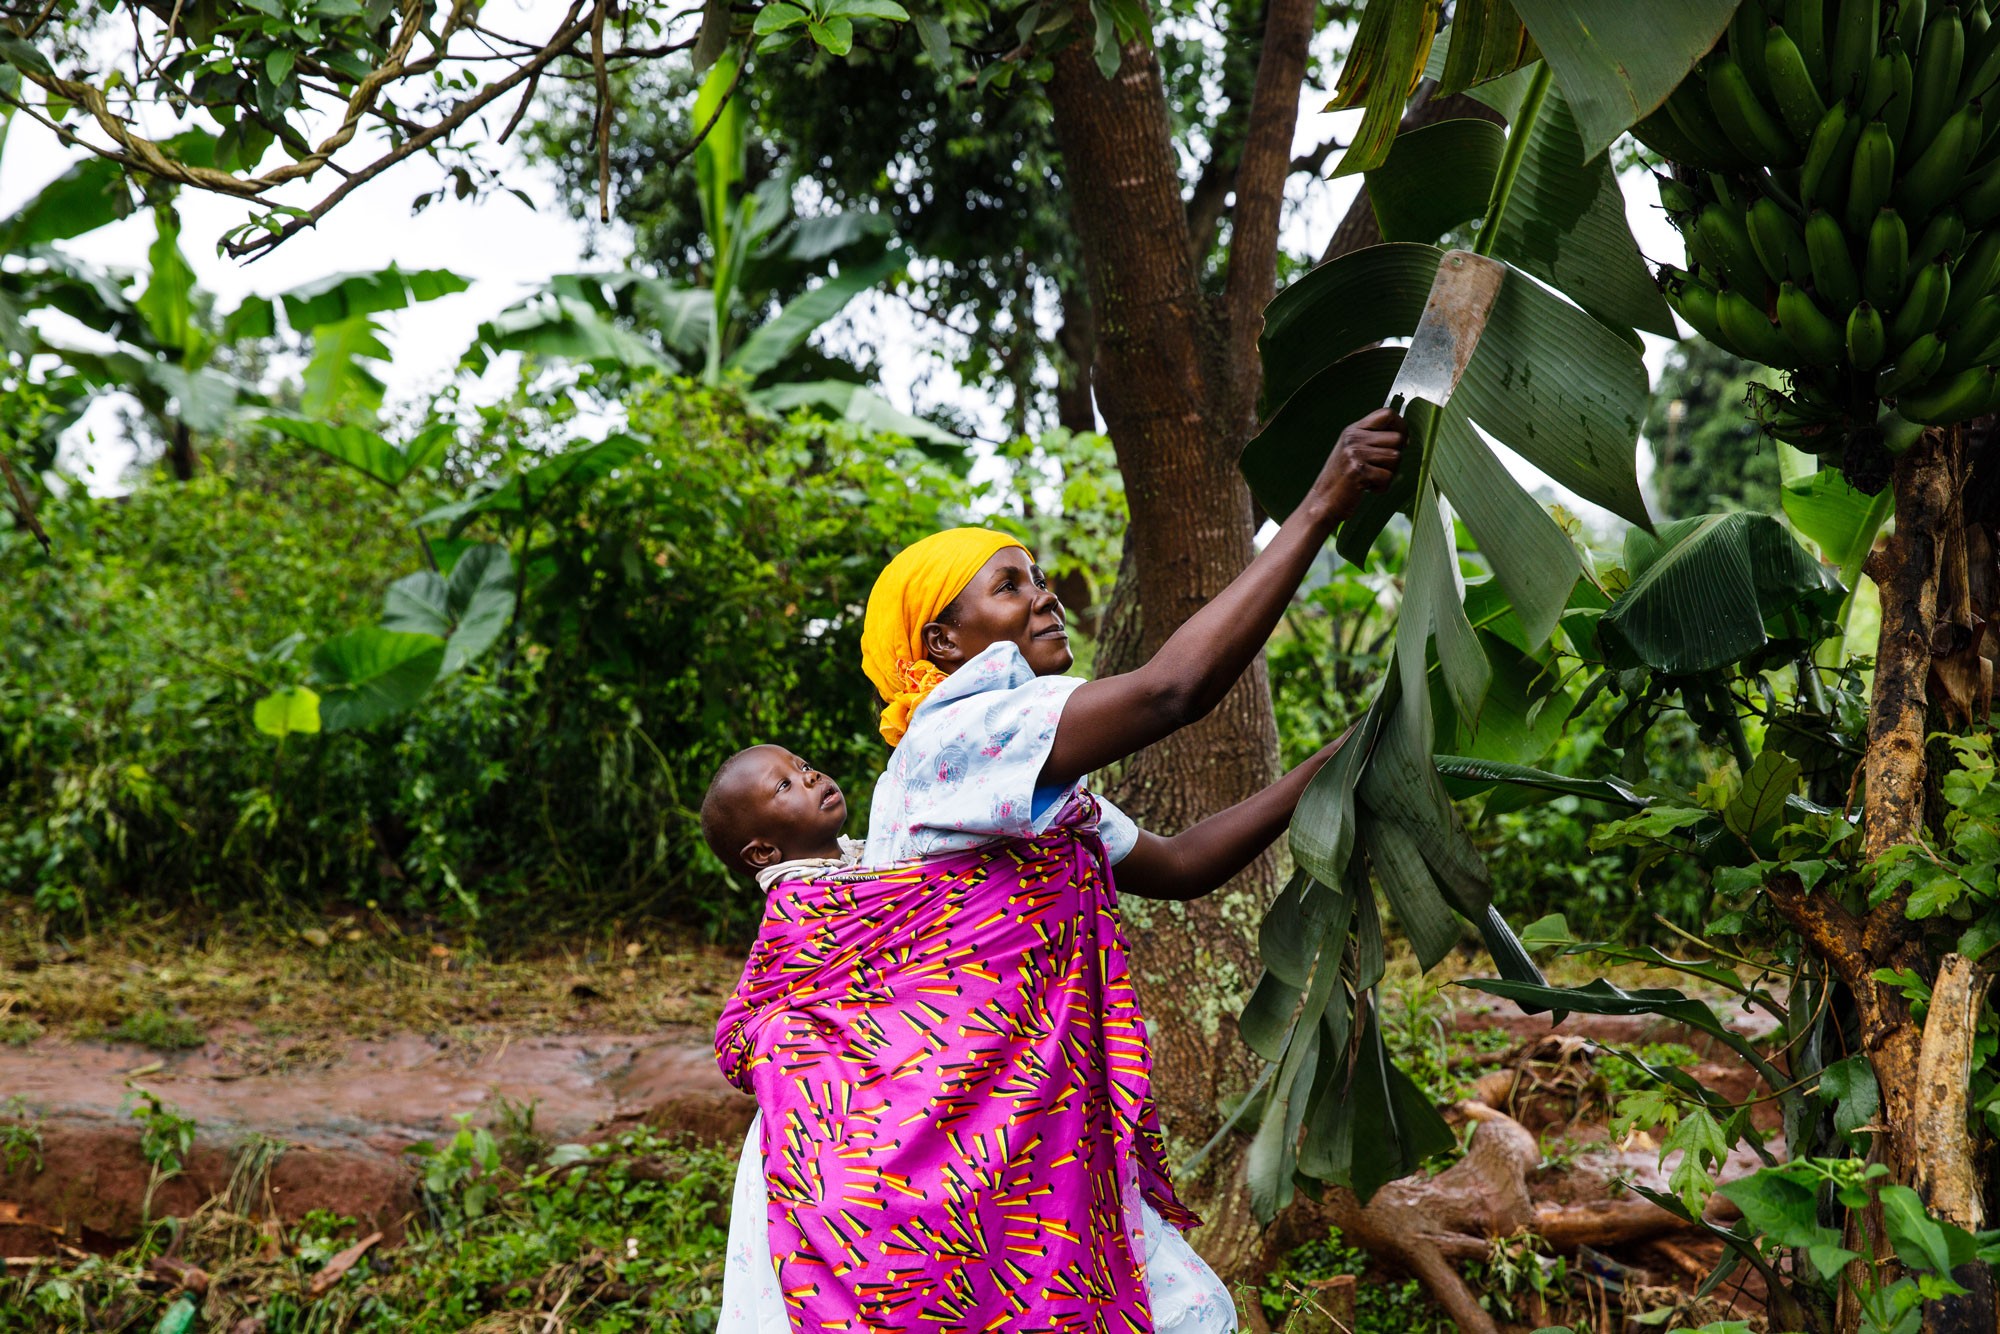 Tina Boyadjieva for Lansinoh photographs a mother in Uganda with her child strapped to her back as she works